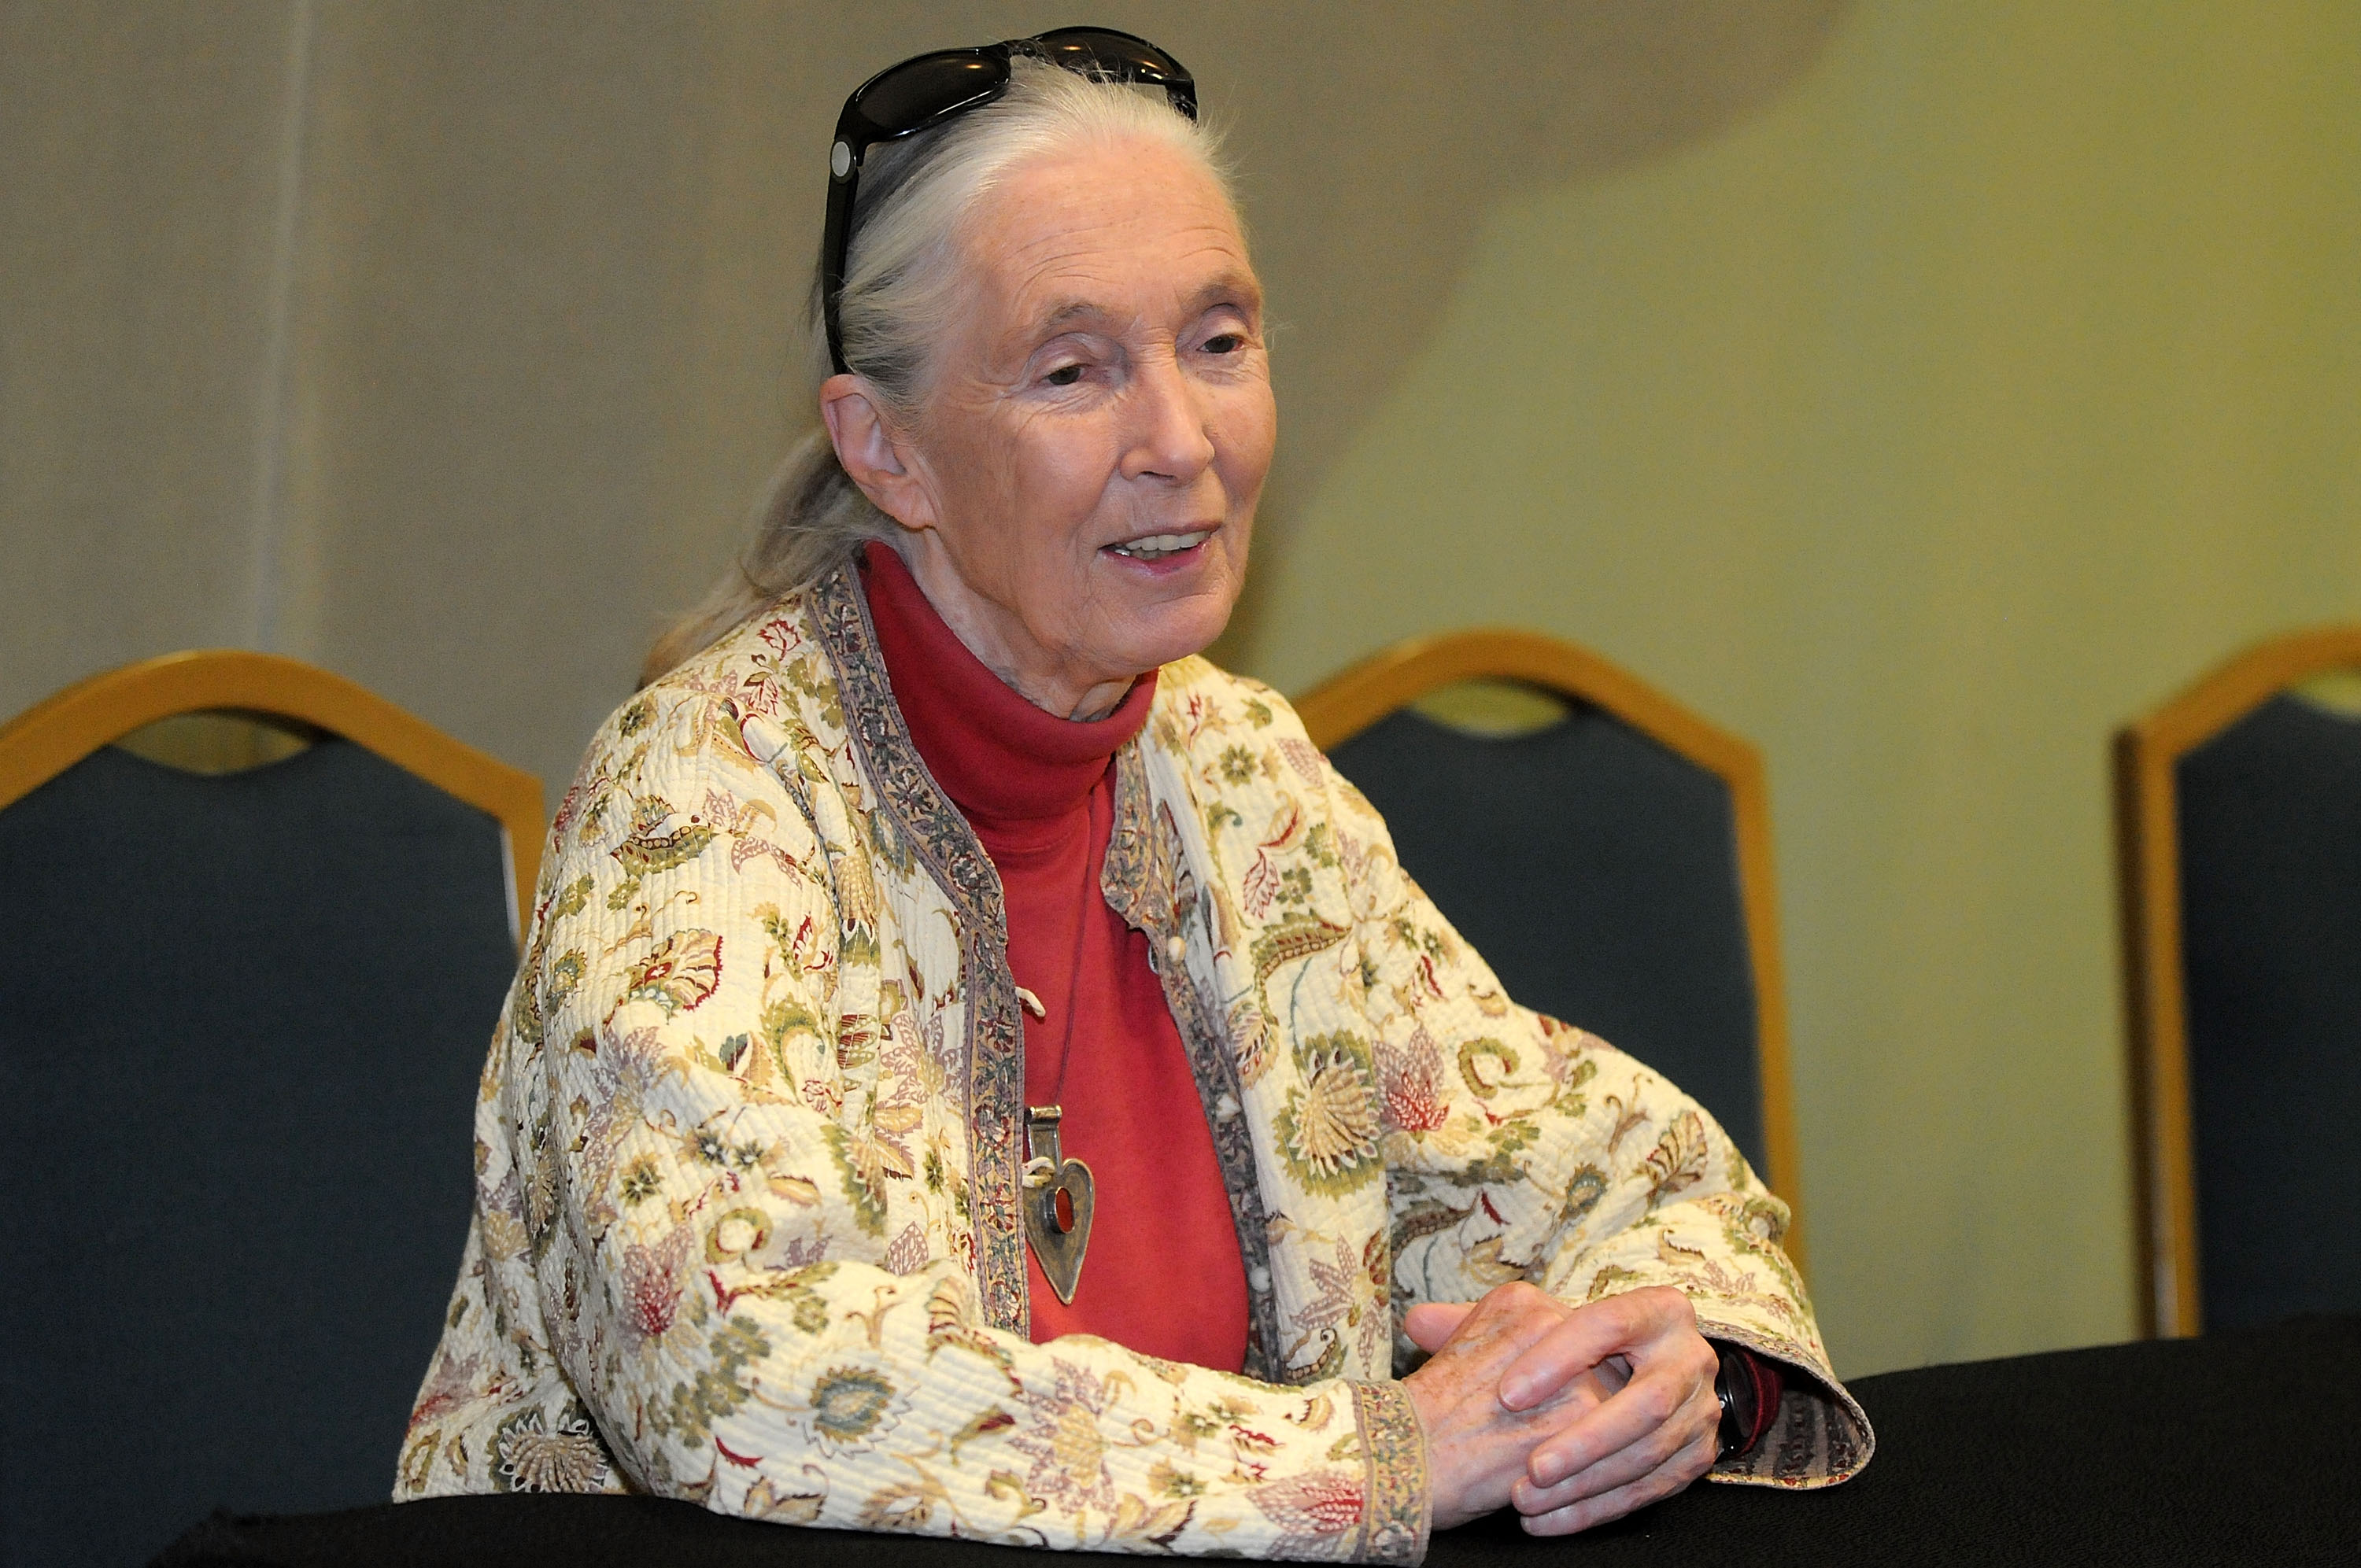 Dr. Jane Goodall Is A Timeless Role Model